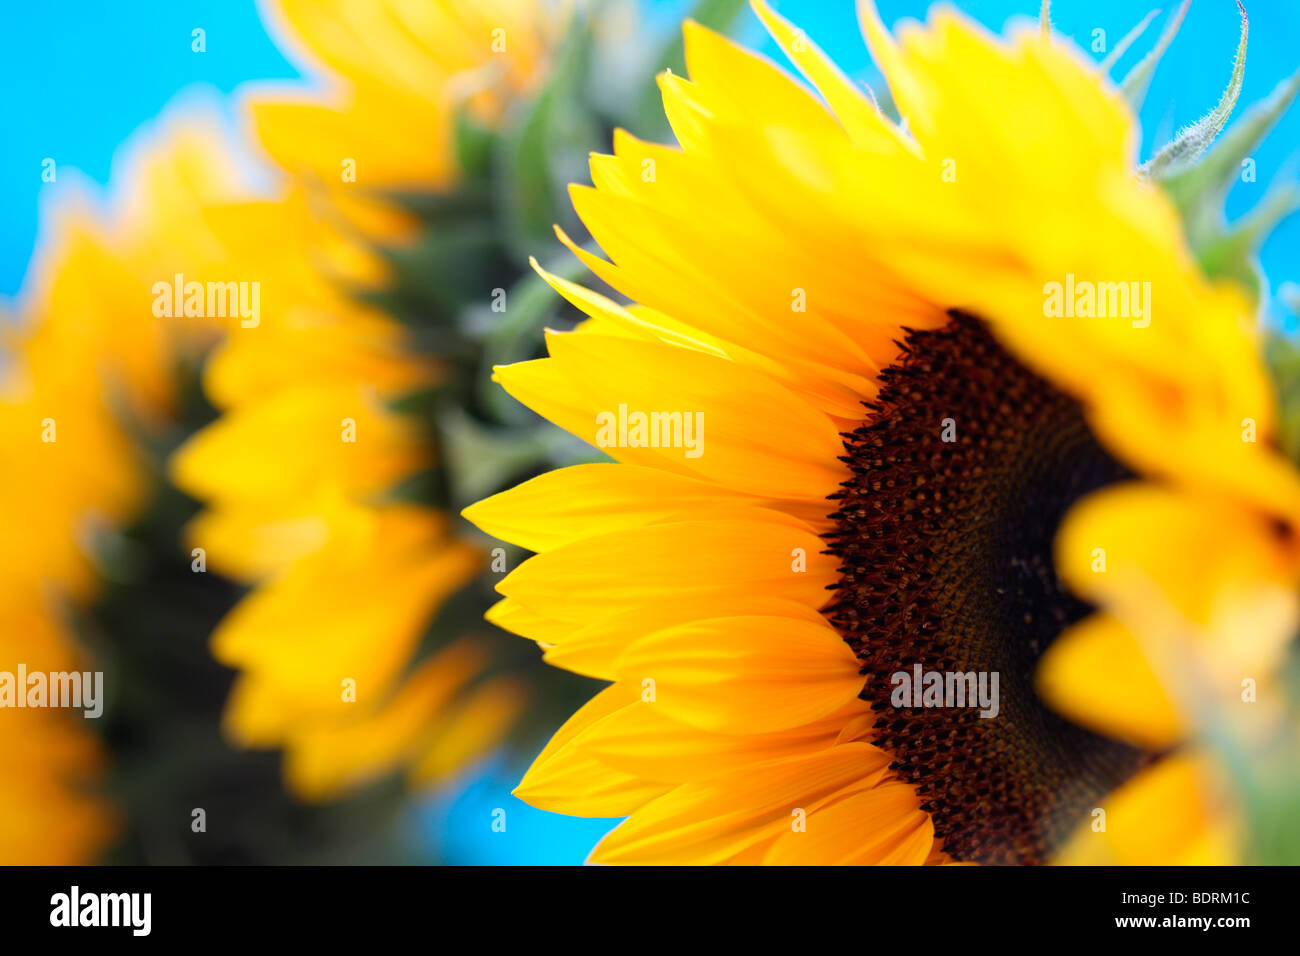 a group of beautiful sunflowers in a contemporary style - fine art photography Jane-Ann Butler Photography JABP586 Stock Photo